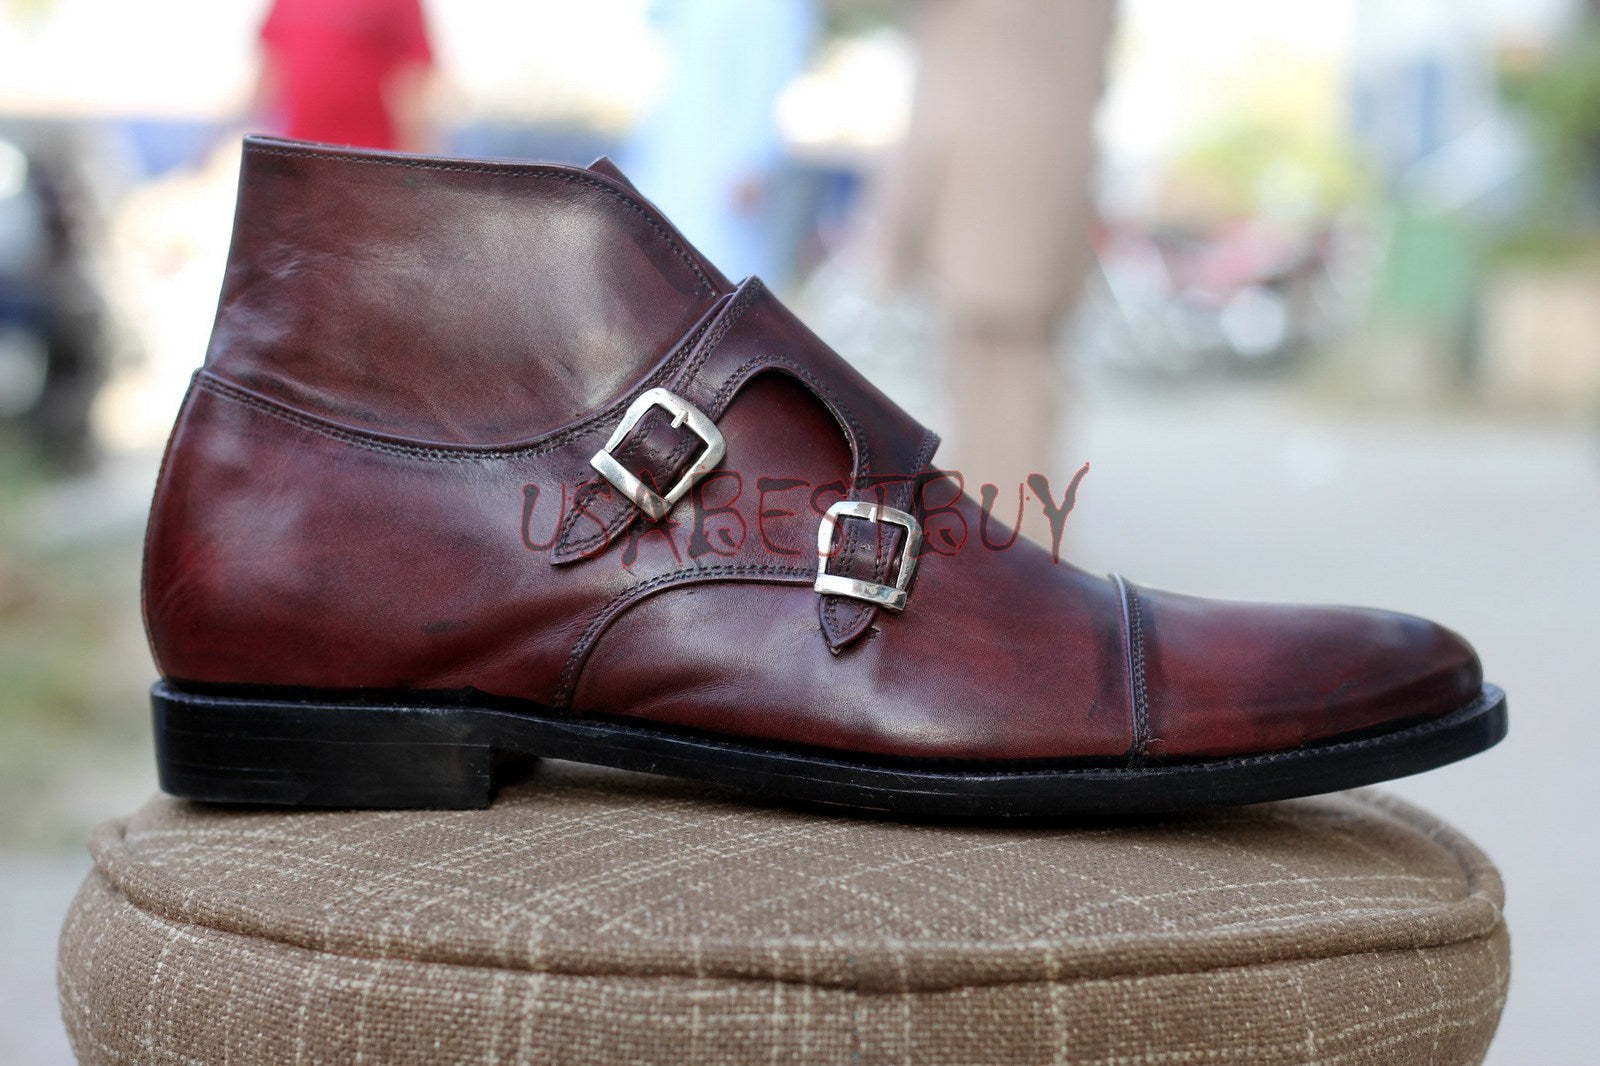 Custom Handmade Men Brogue in Chukka Style Leather Boots with Buckles